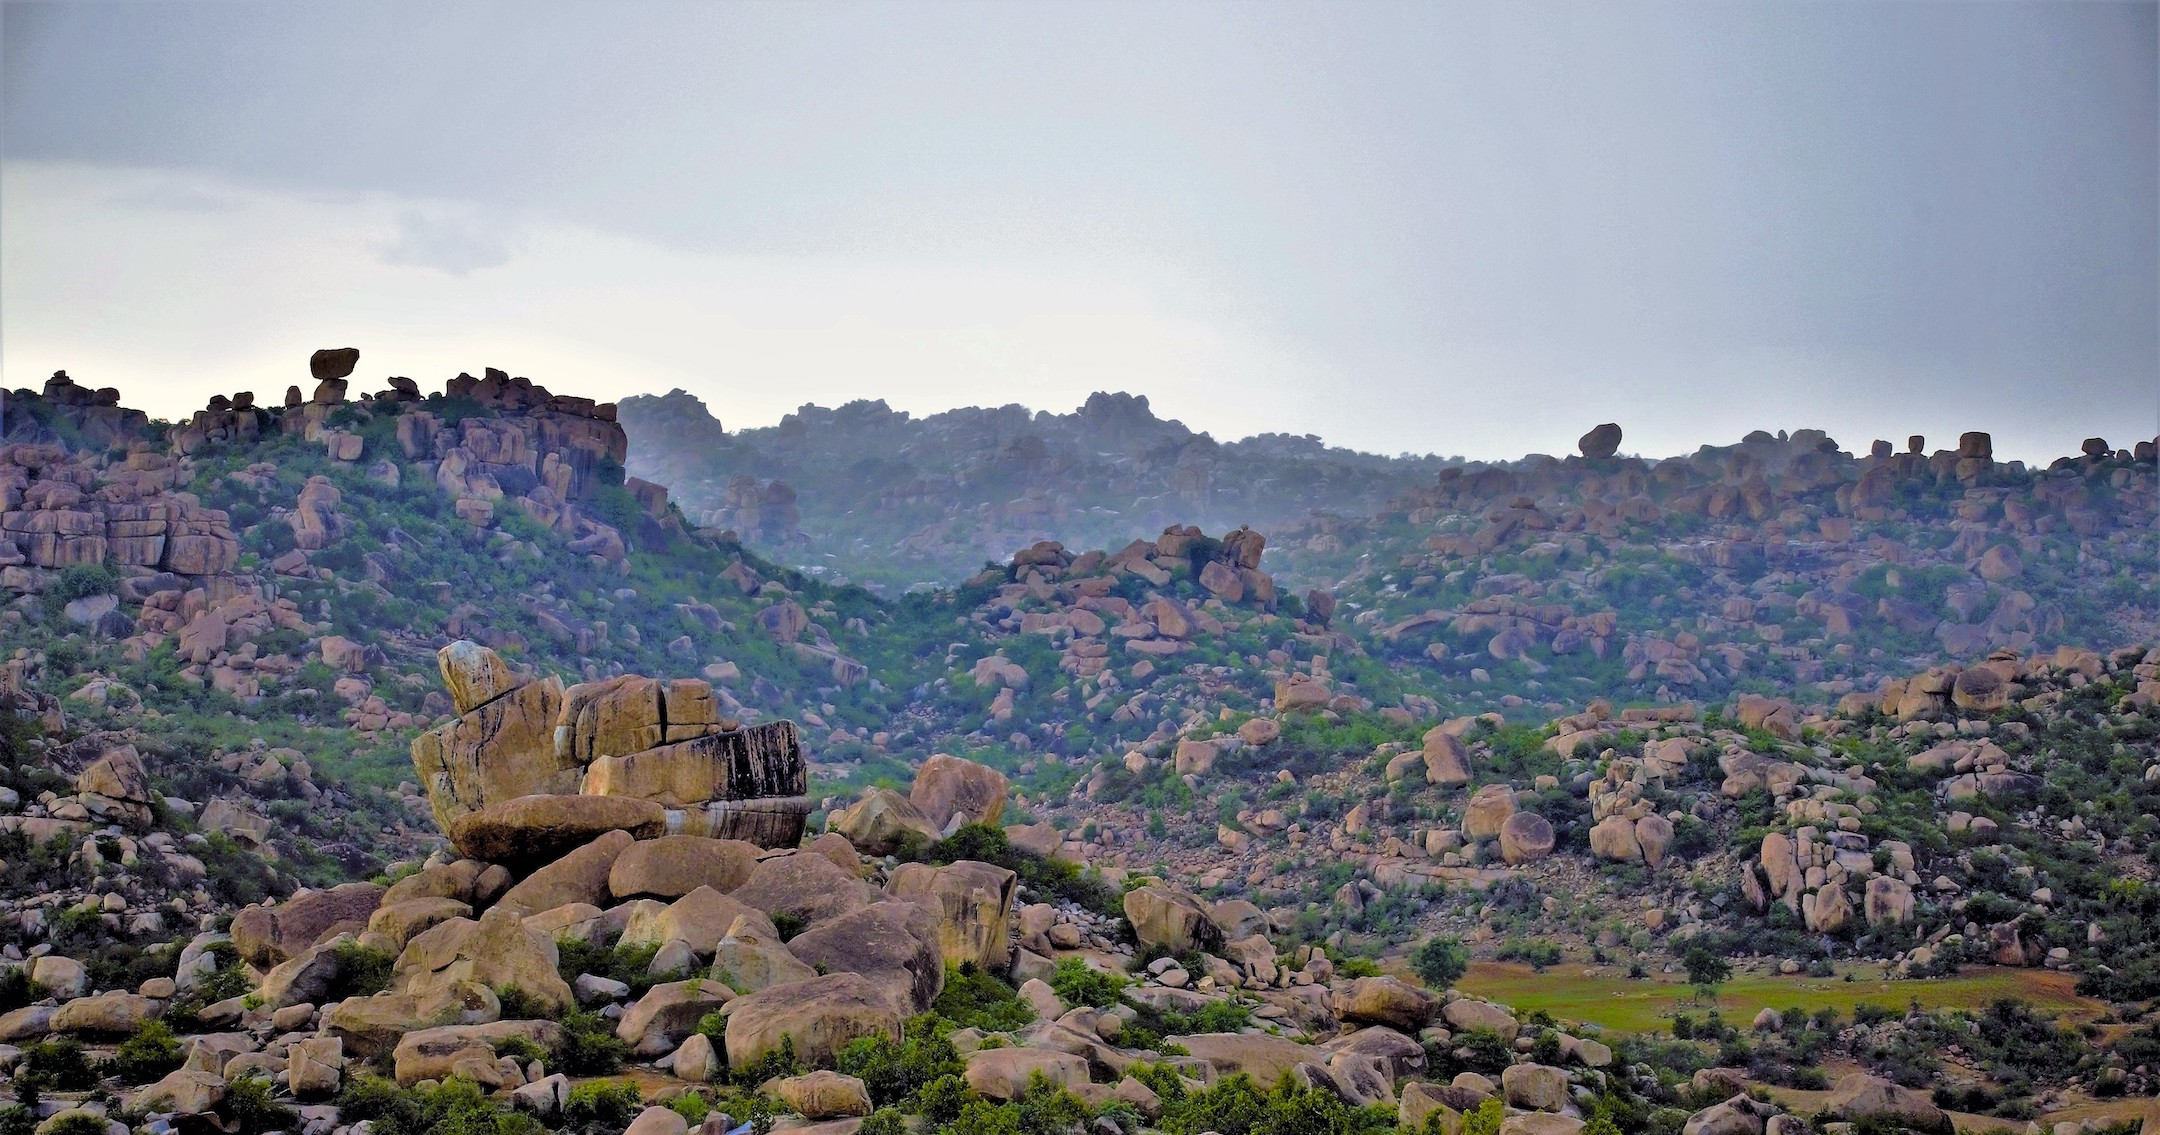 Rocky outcrops are the last remaining refuges for wildlife in Koppal. During denning months several carnivores such as leopards, bears, and jungle cats share the same outcrop while rearing their young.  Cover photo: The Indian wolf is an endangered subspecies of the grey wolf. It is found in pockets of arid grasslands and scrublands across India.